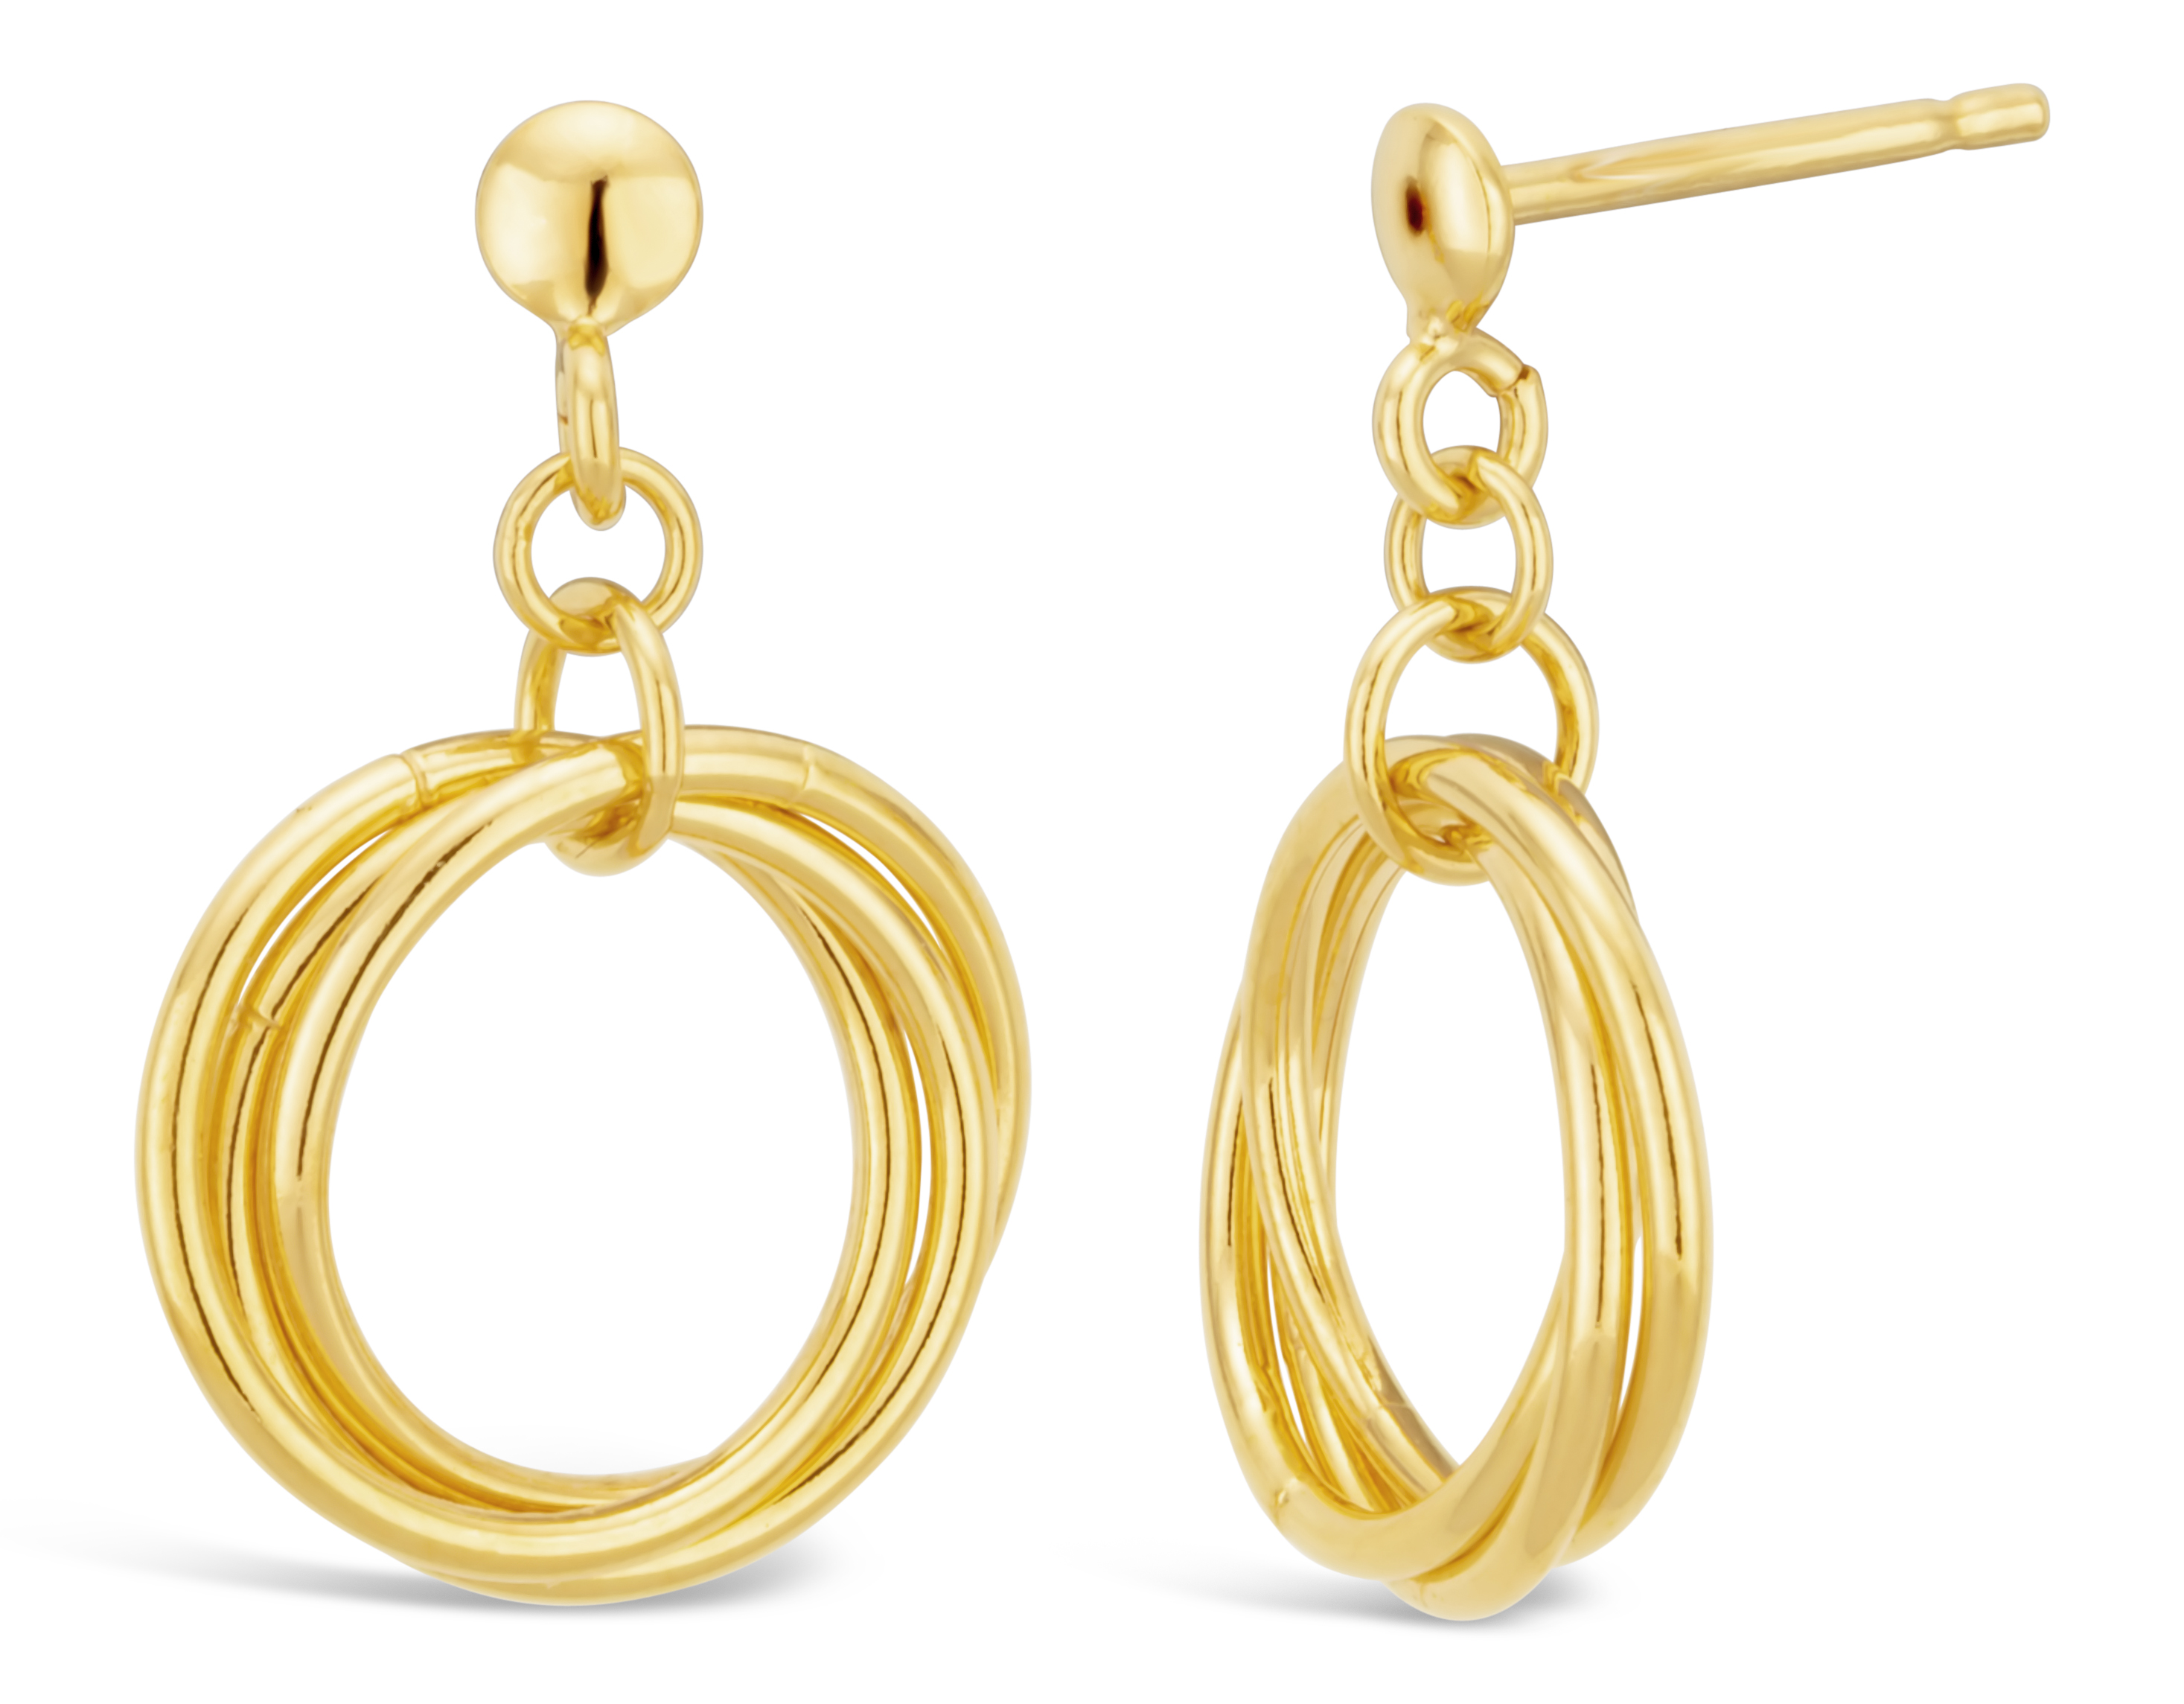 9ct Gold Filled Twist Circle Stud Earrings